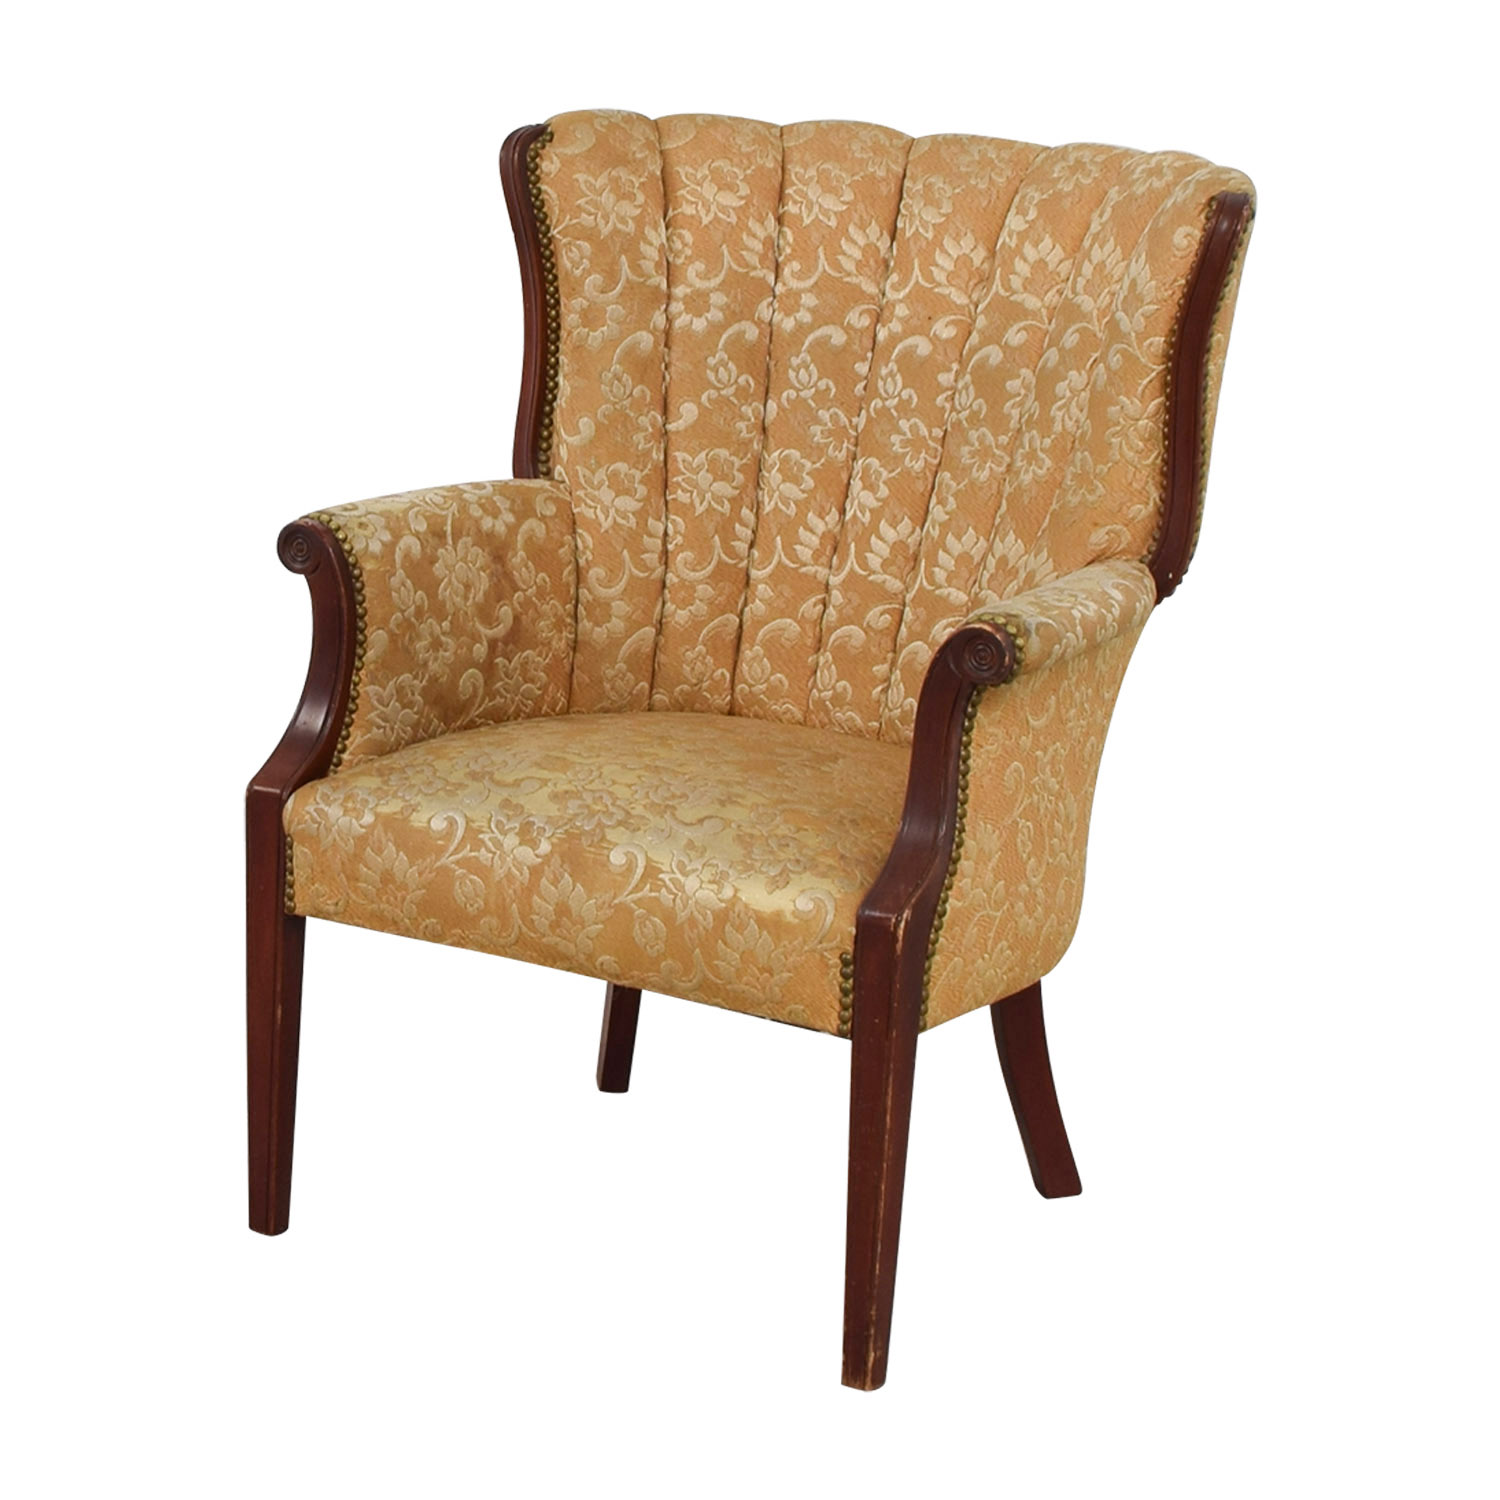 Vintage Accent Chair Vintage Accent Chair